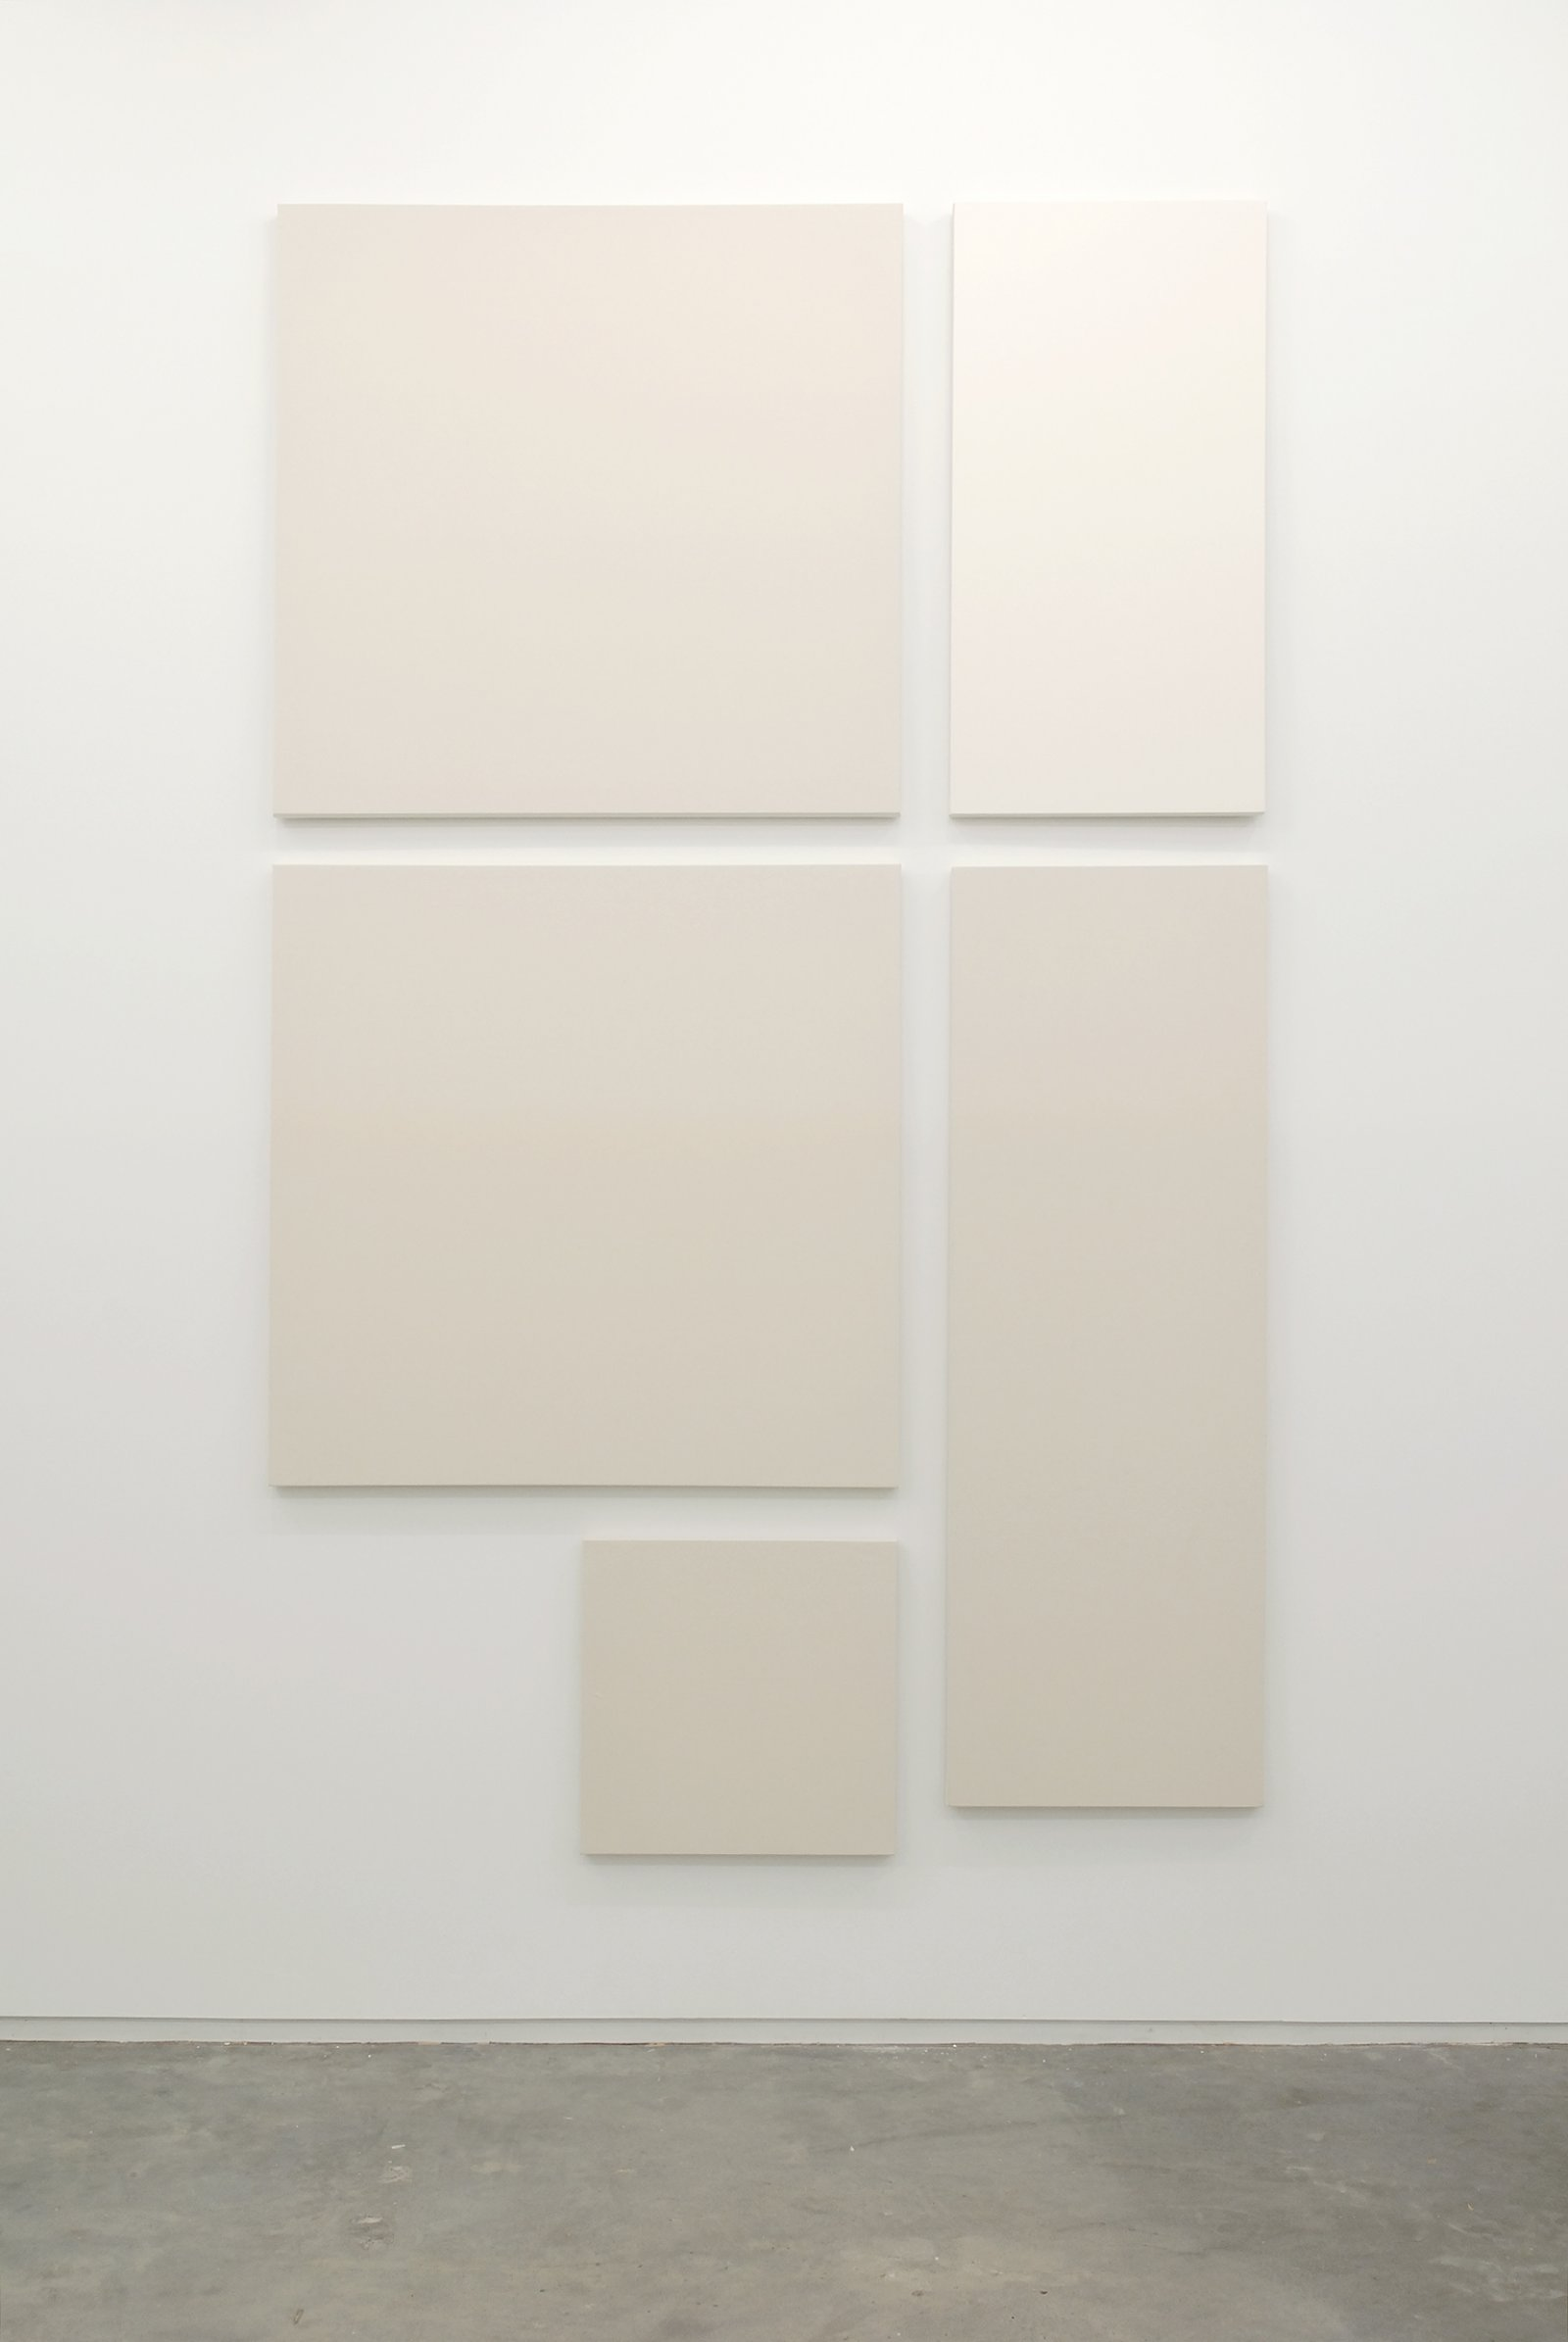 Arabella Campbell, Total Surface Area Equal to the Space Behind You, 2007, acrylic on canvas, 5 panels, 2: 48 x 48 in. (122 x 122 cm), 1: 24 x 24 in. (61 x 61 cm), 1: 72 x 24 in. (183 x 61 cm), 1: 24 x 24 in. (61 x 61 cm) by